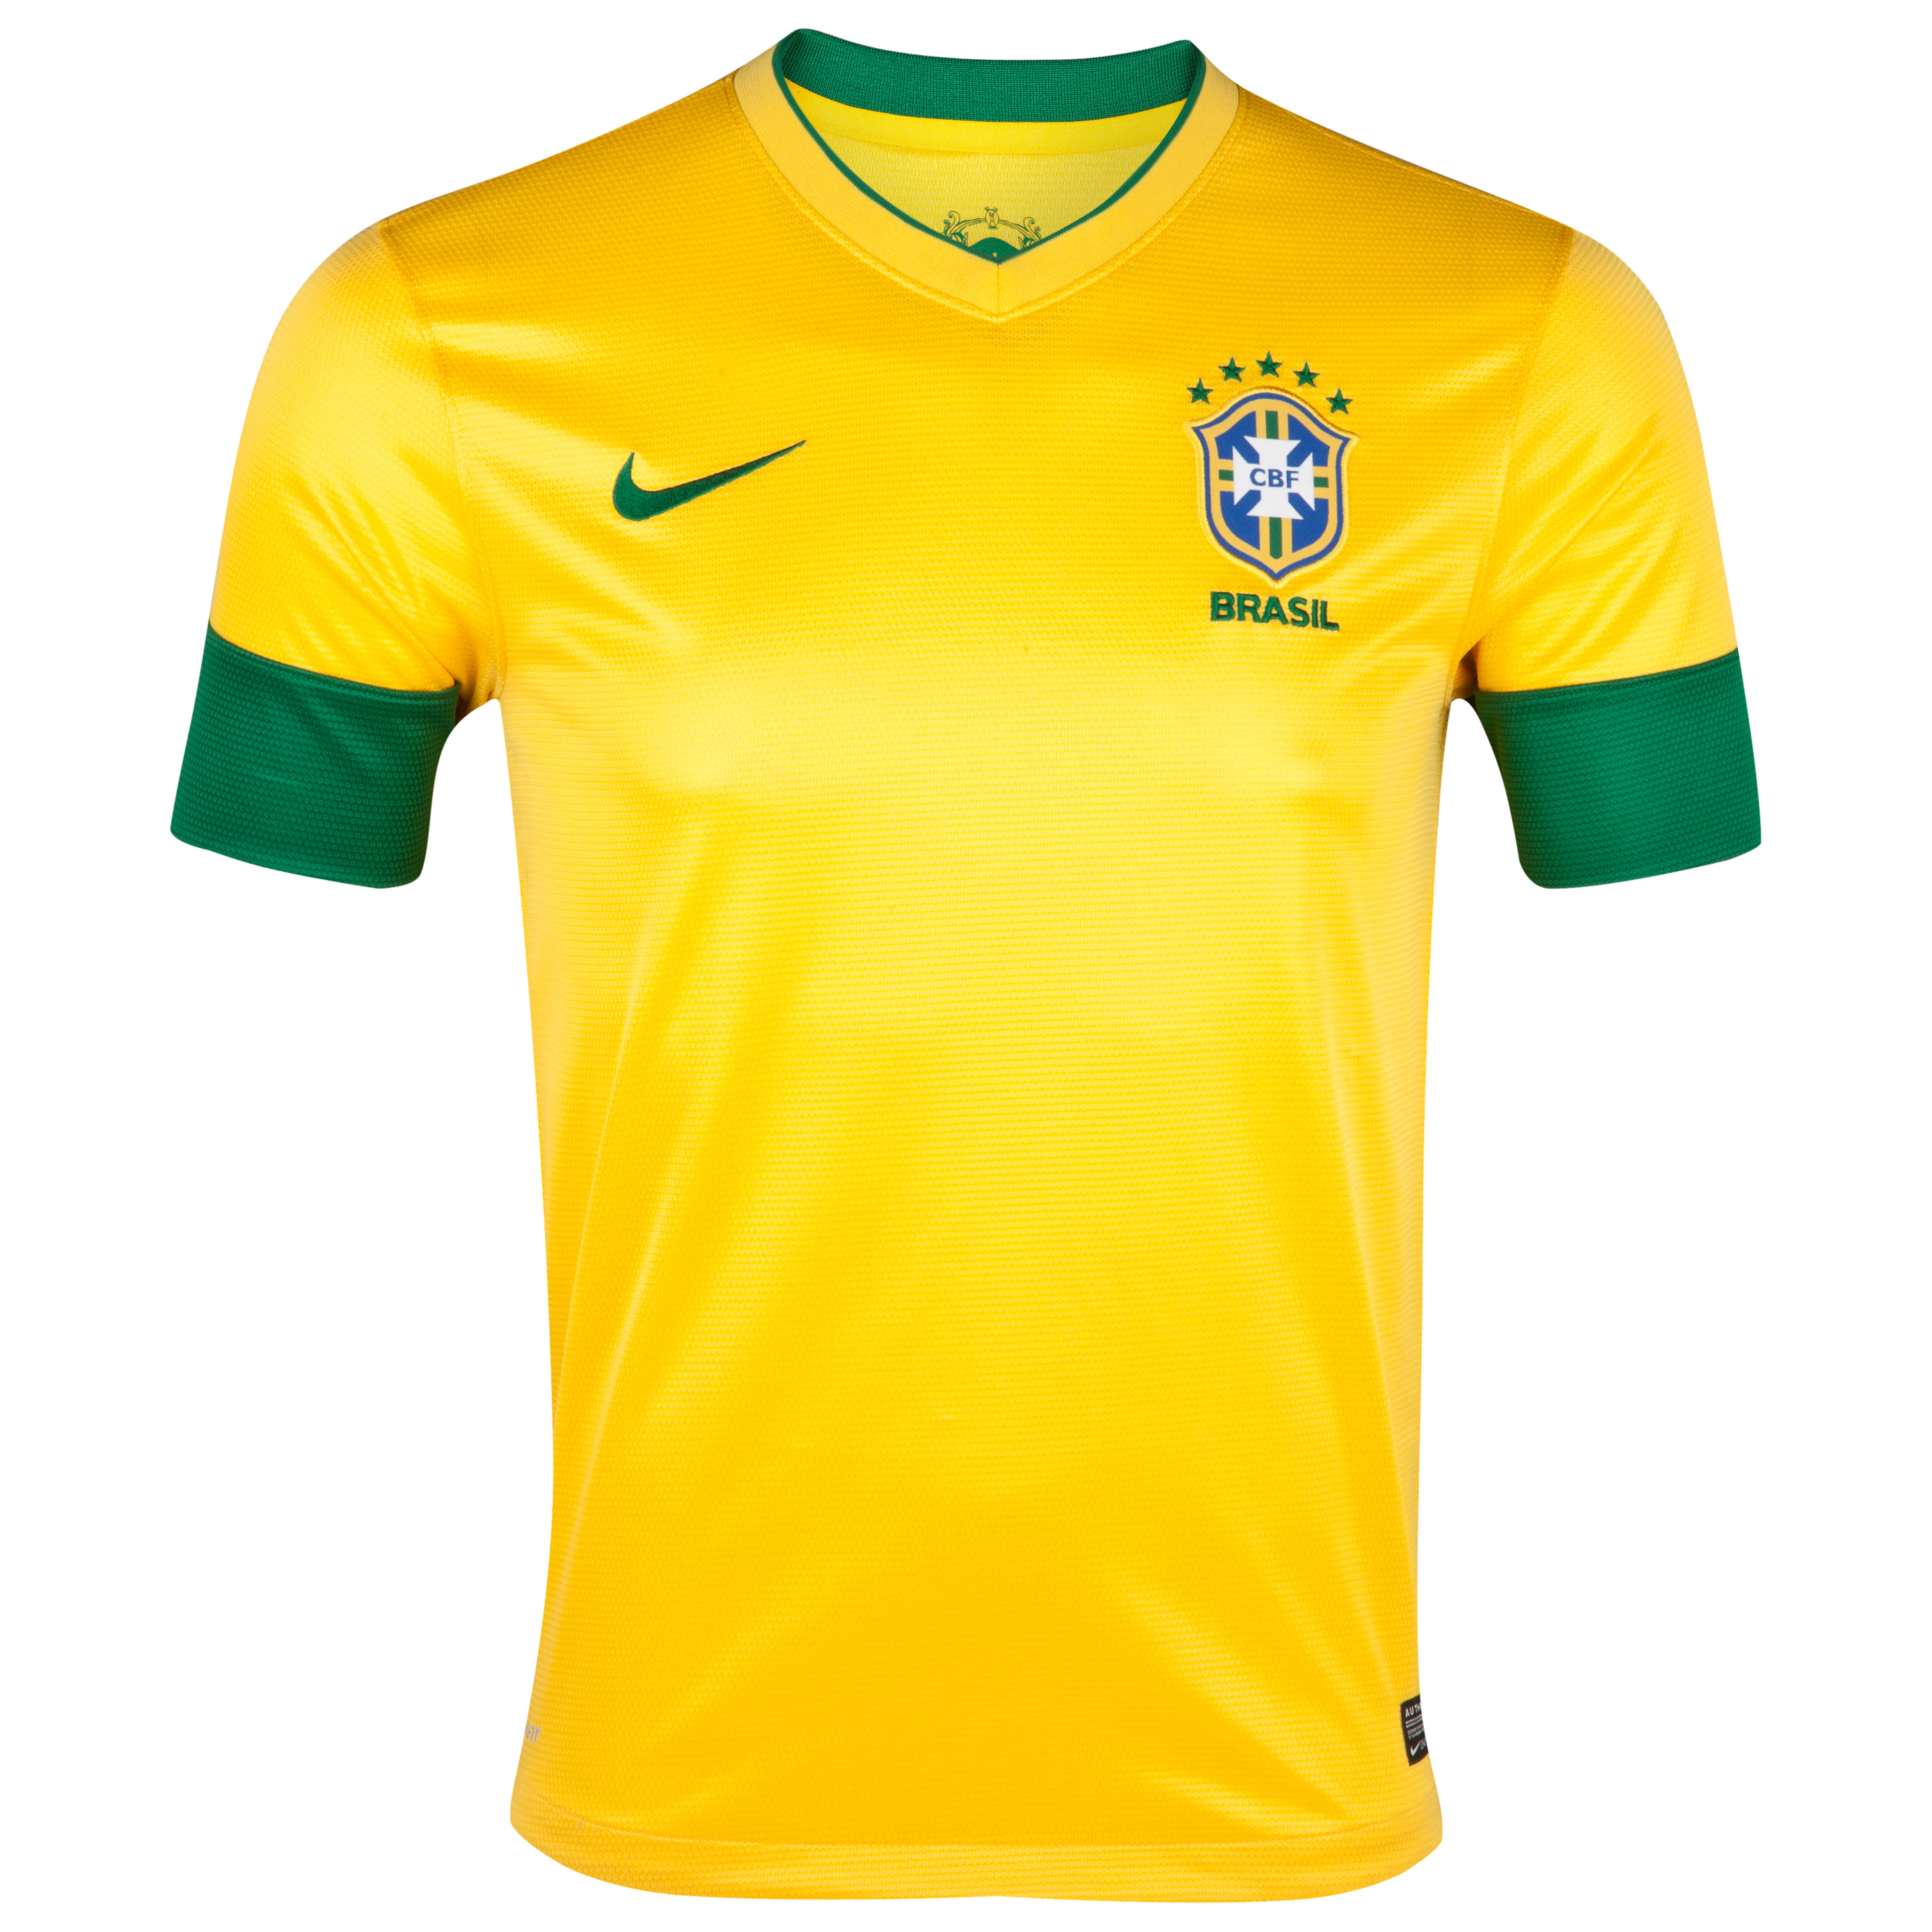 Brazil Home Shirt 2012/13